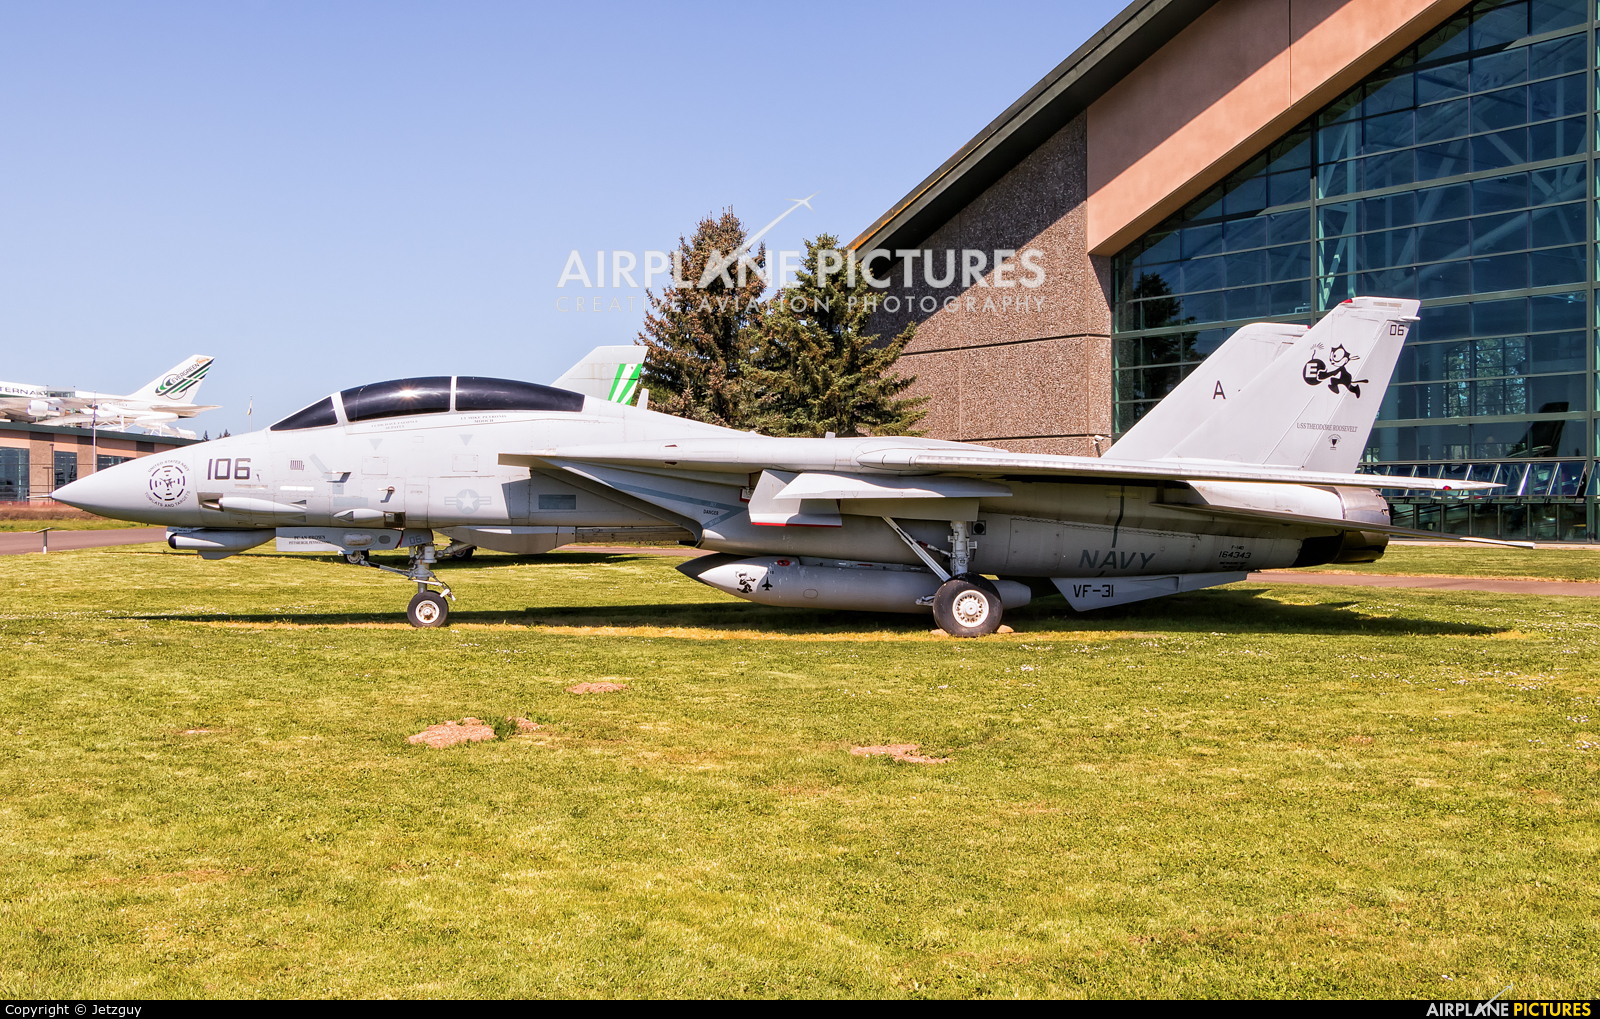 USA - Navy 164343 aircraft at McMinnville - Evergreen Aviation & Space Museum